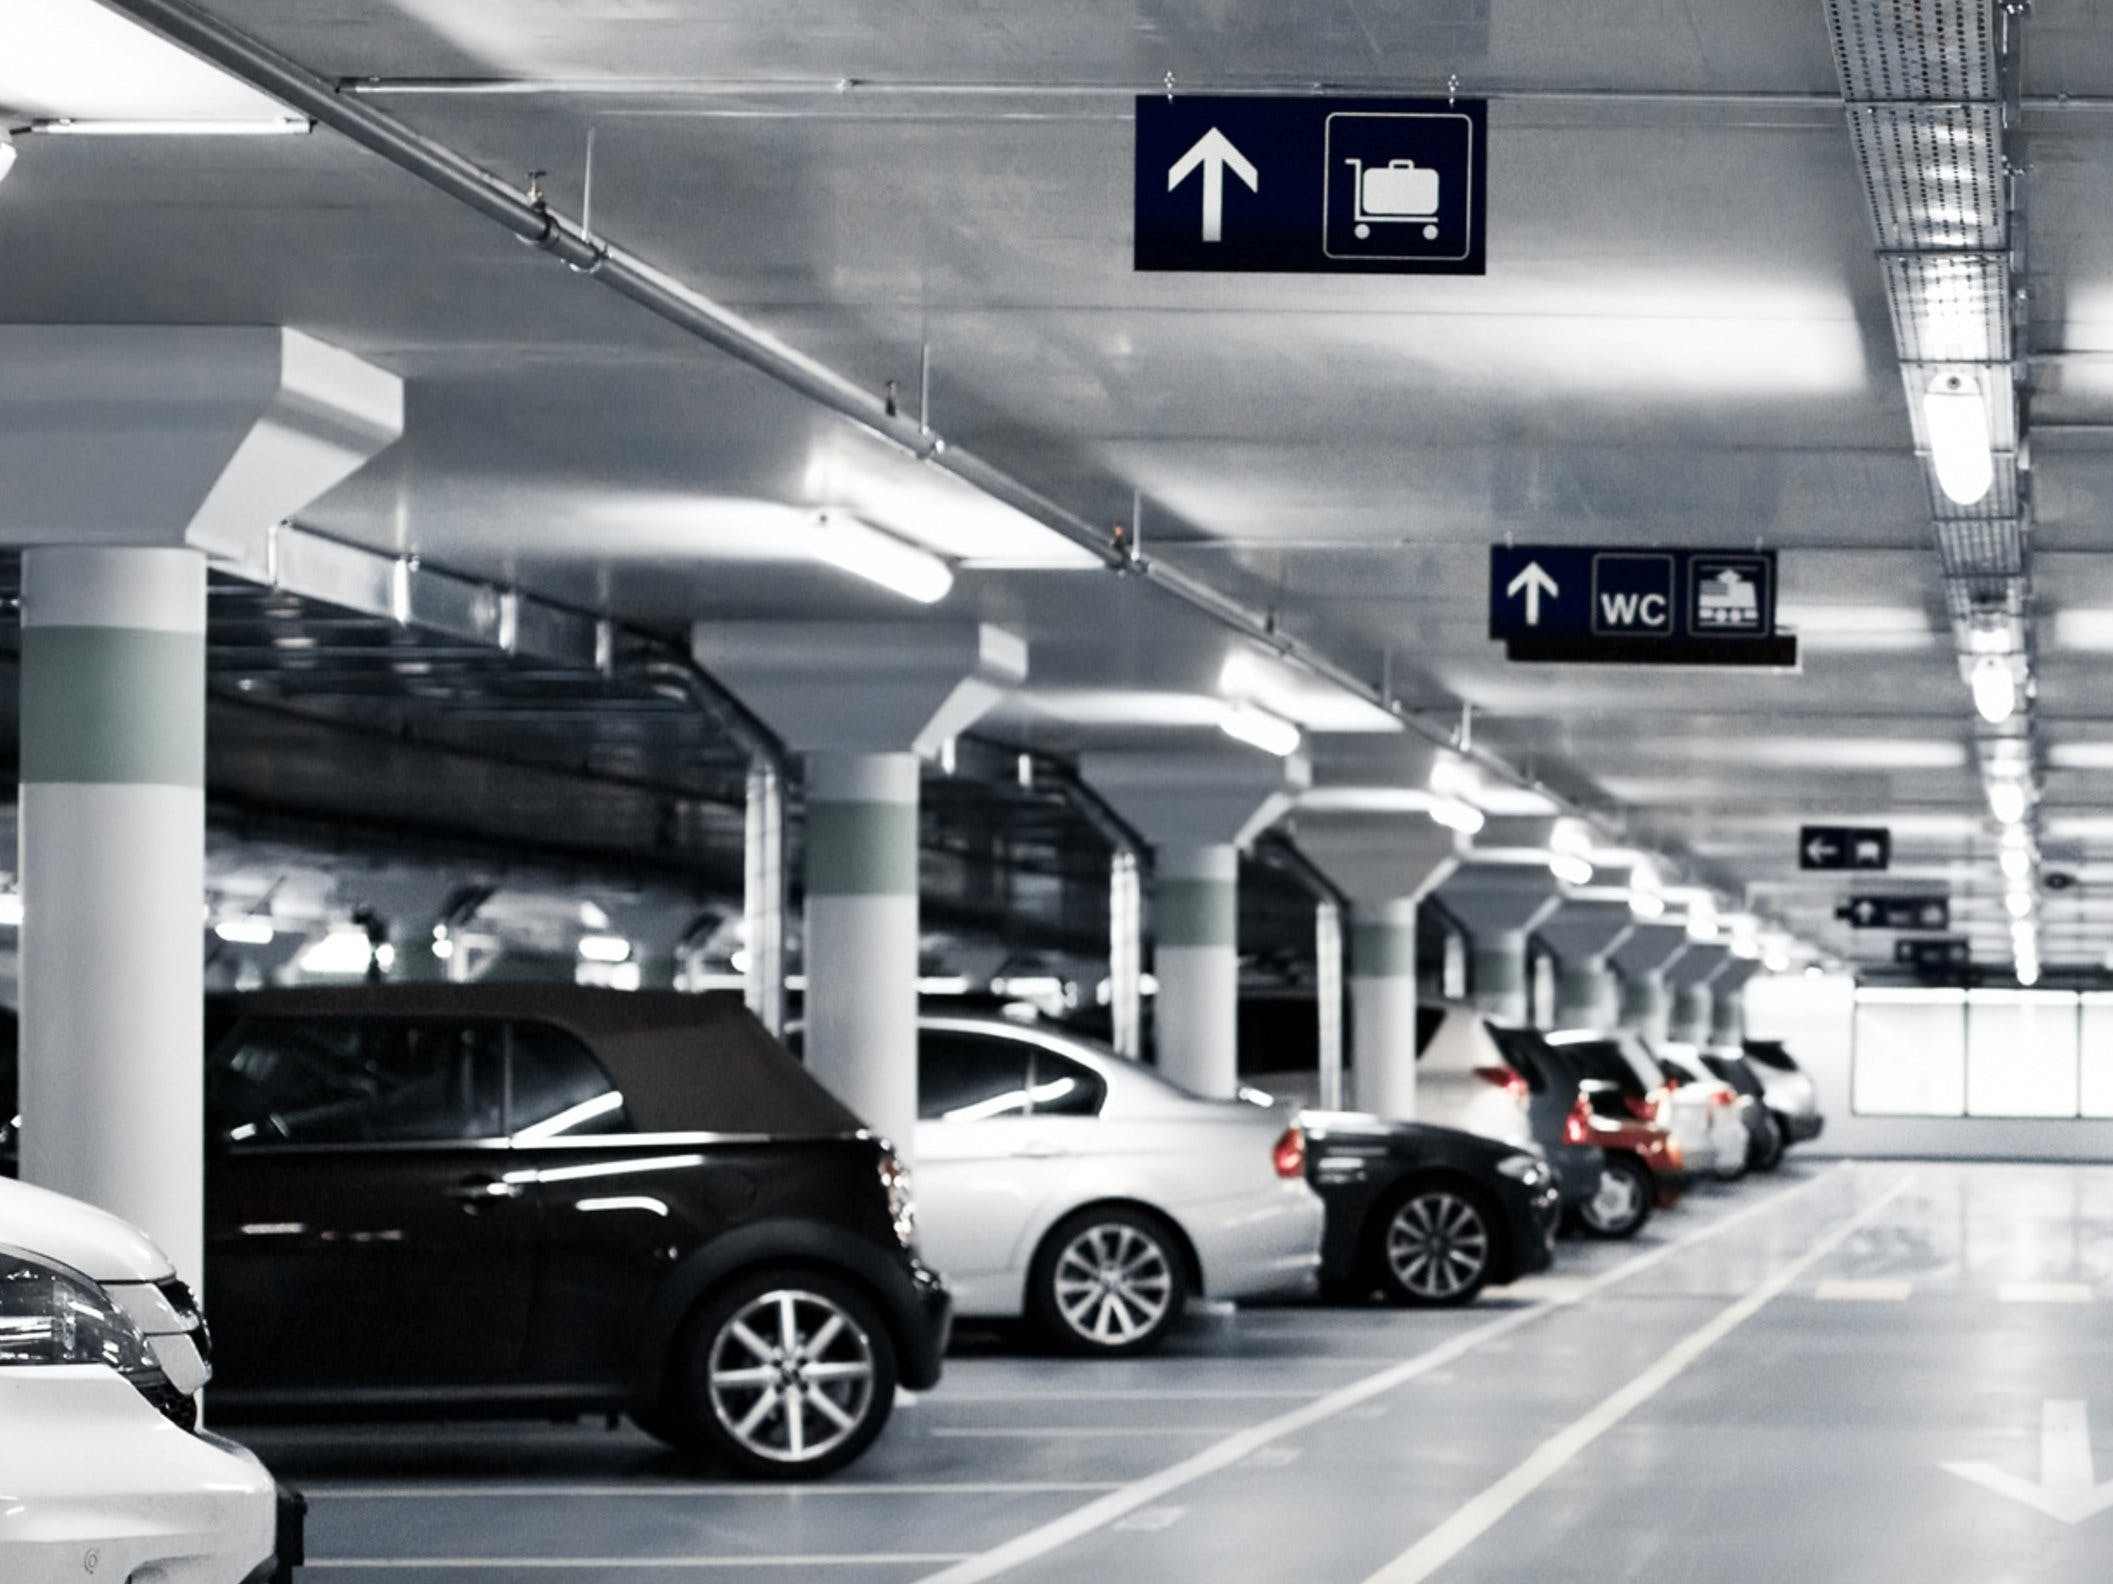 Parking Availability System